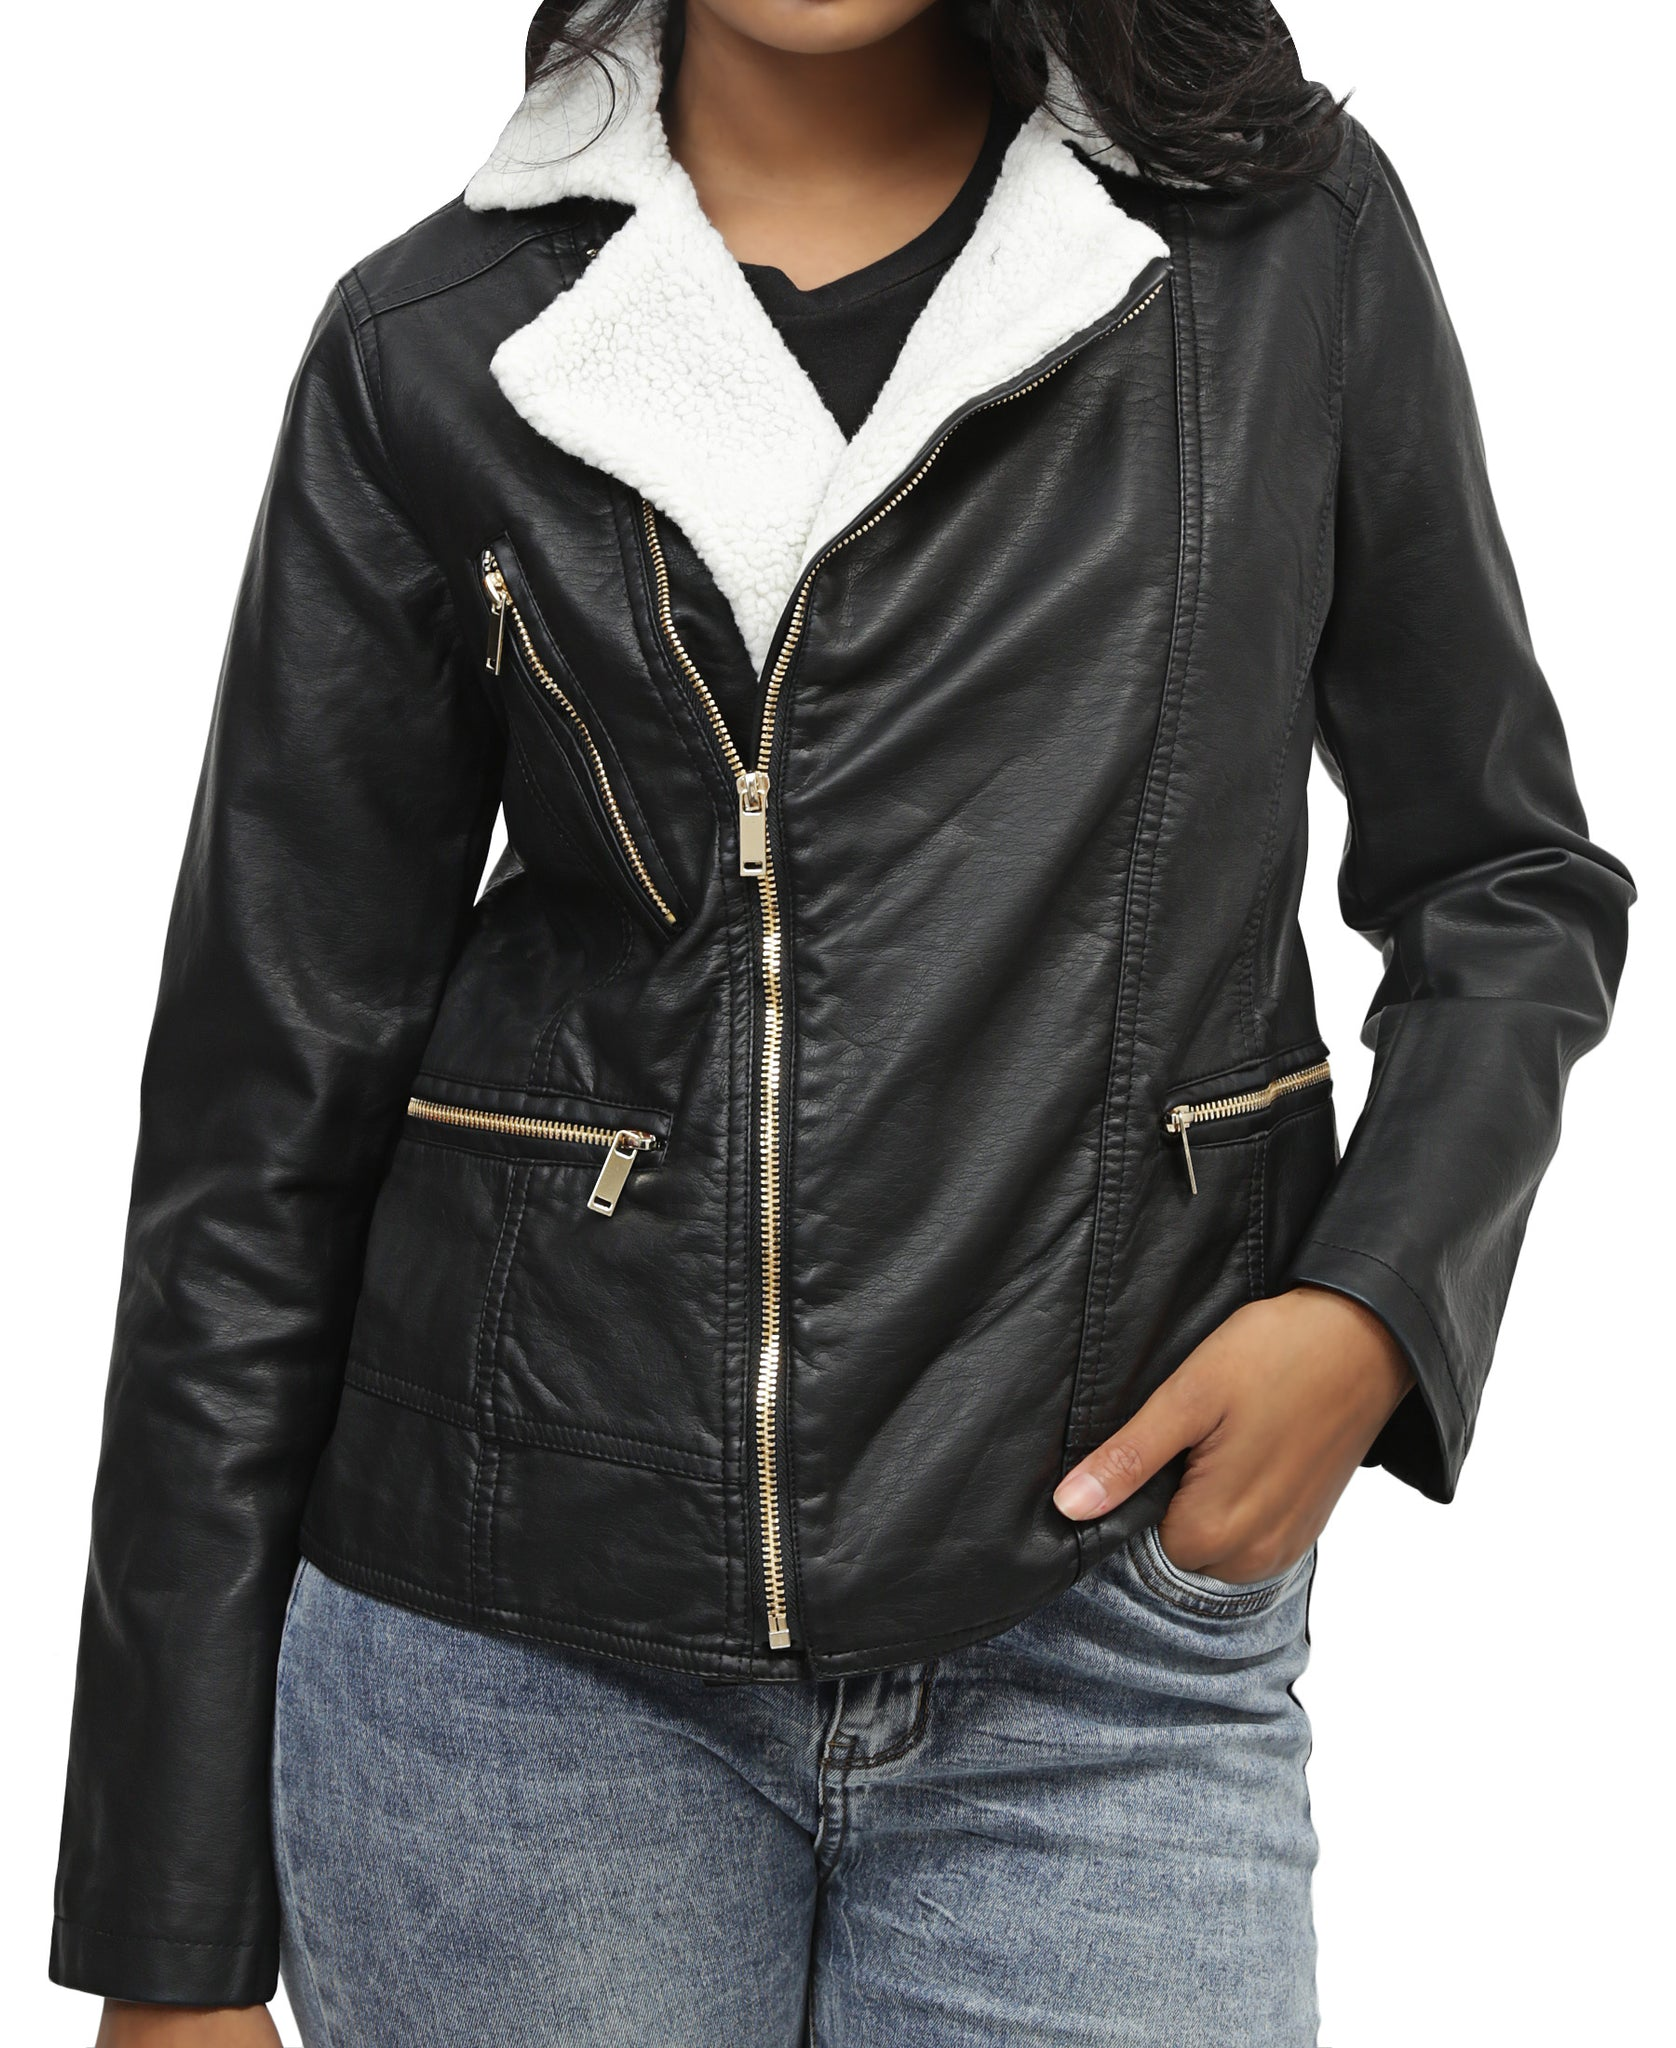 Ladies' Biker Jacket - Black